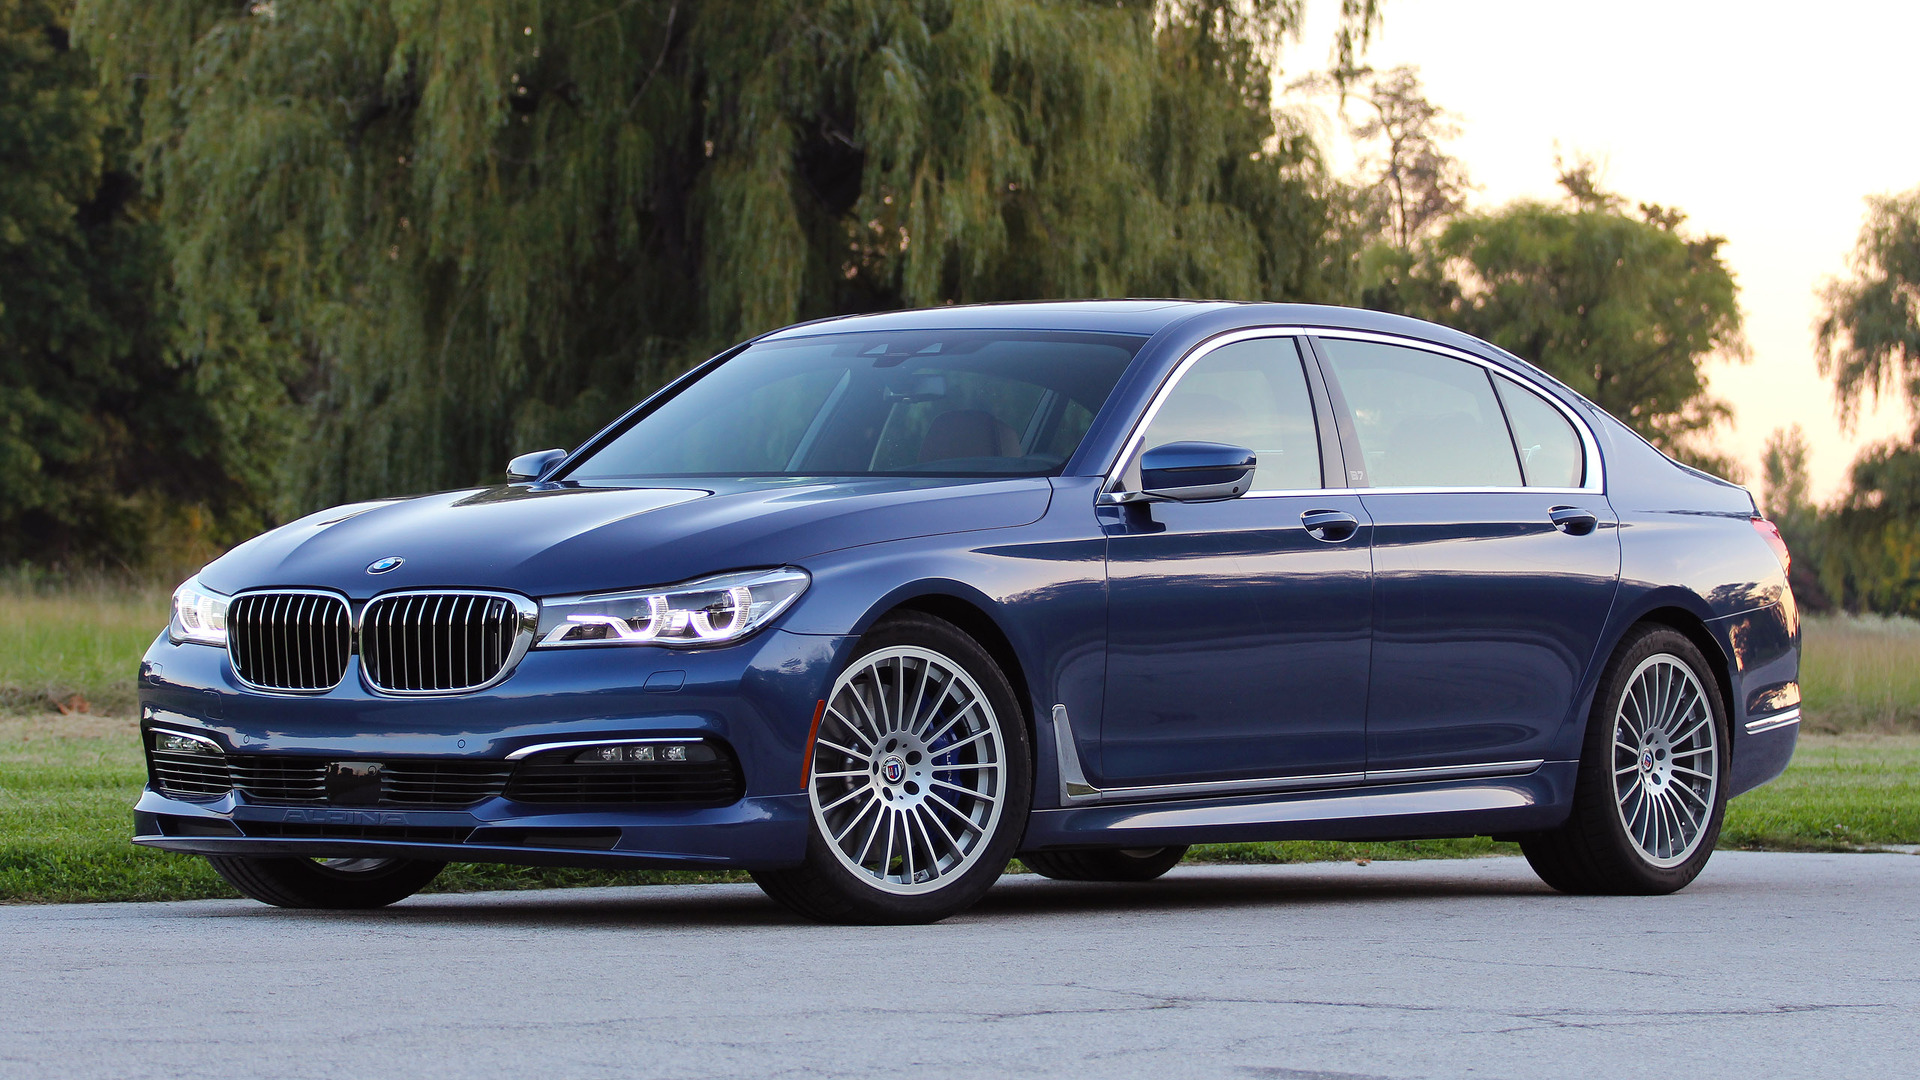 2017 Bmw Alpina B7 Review The Magnificent Seven